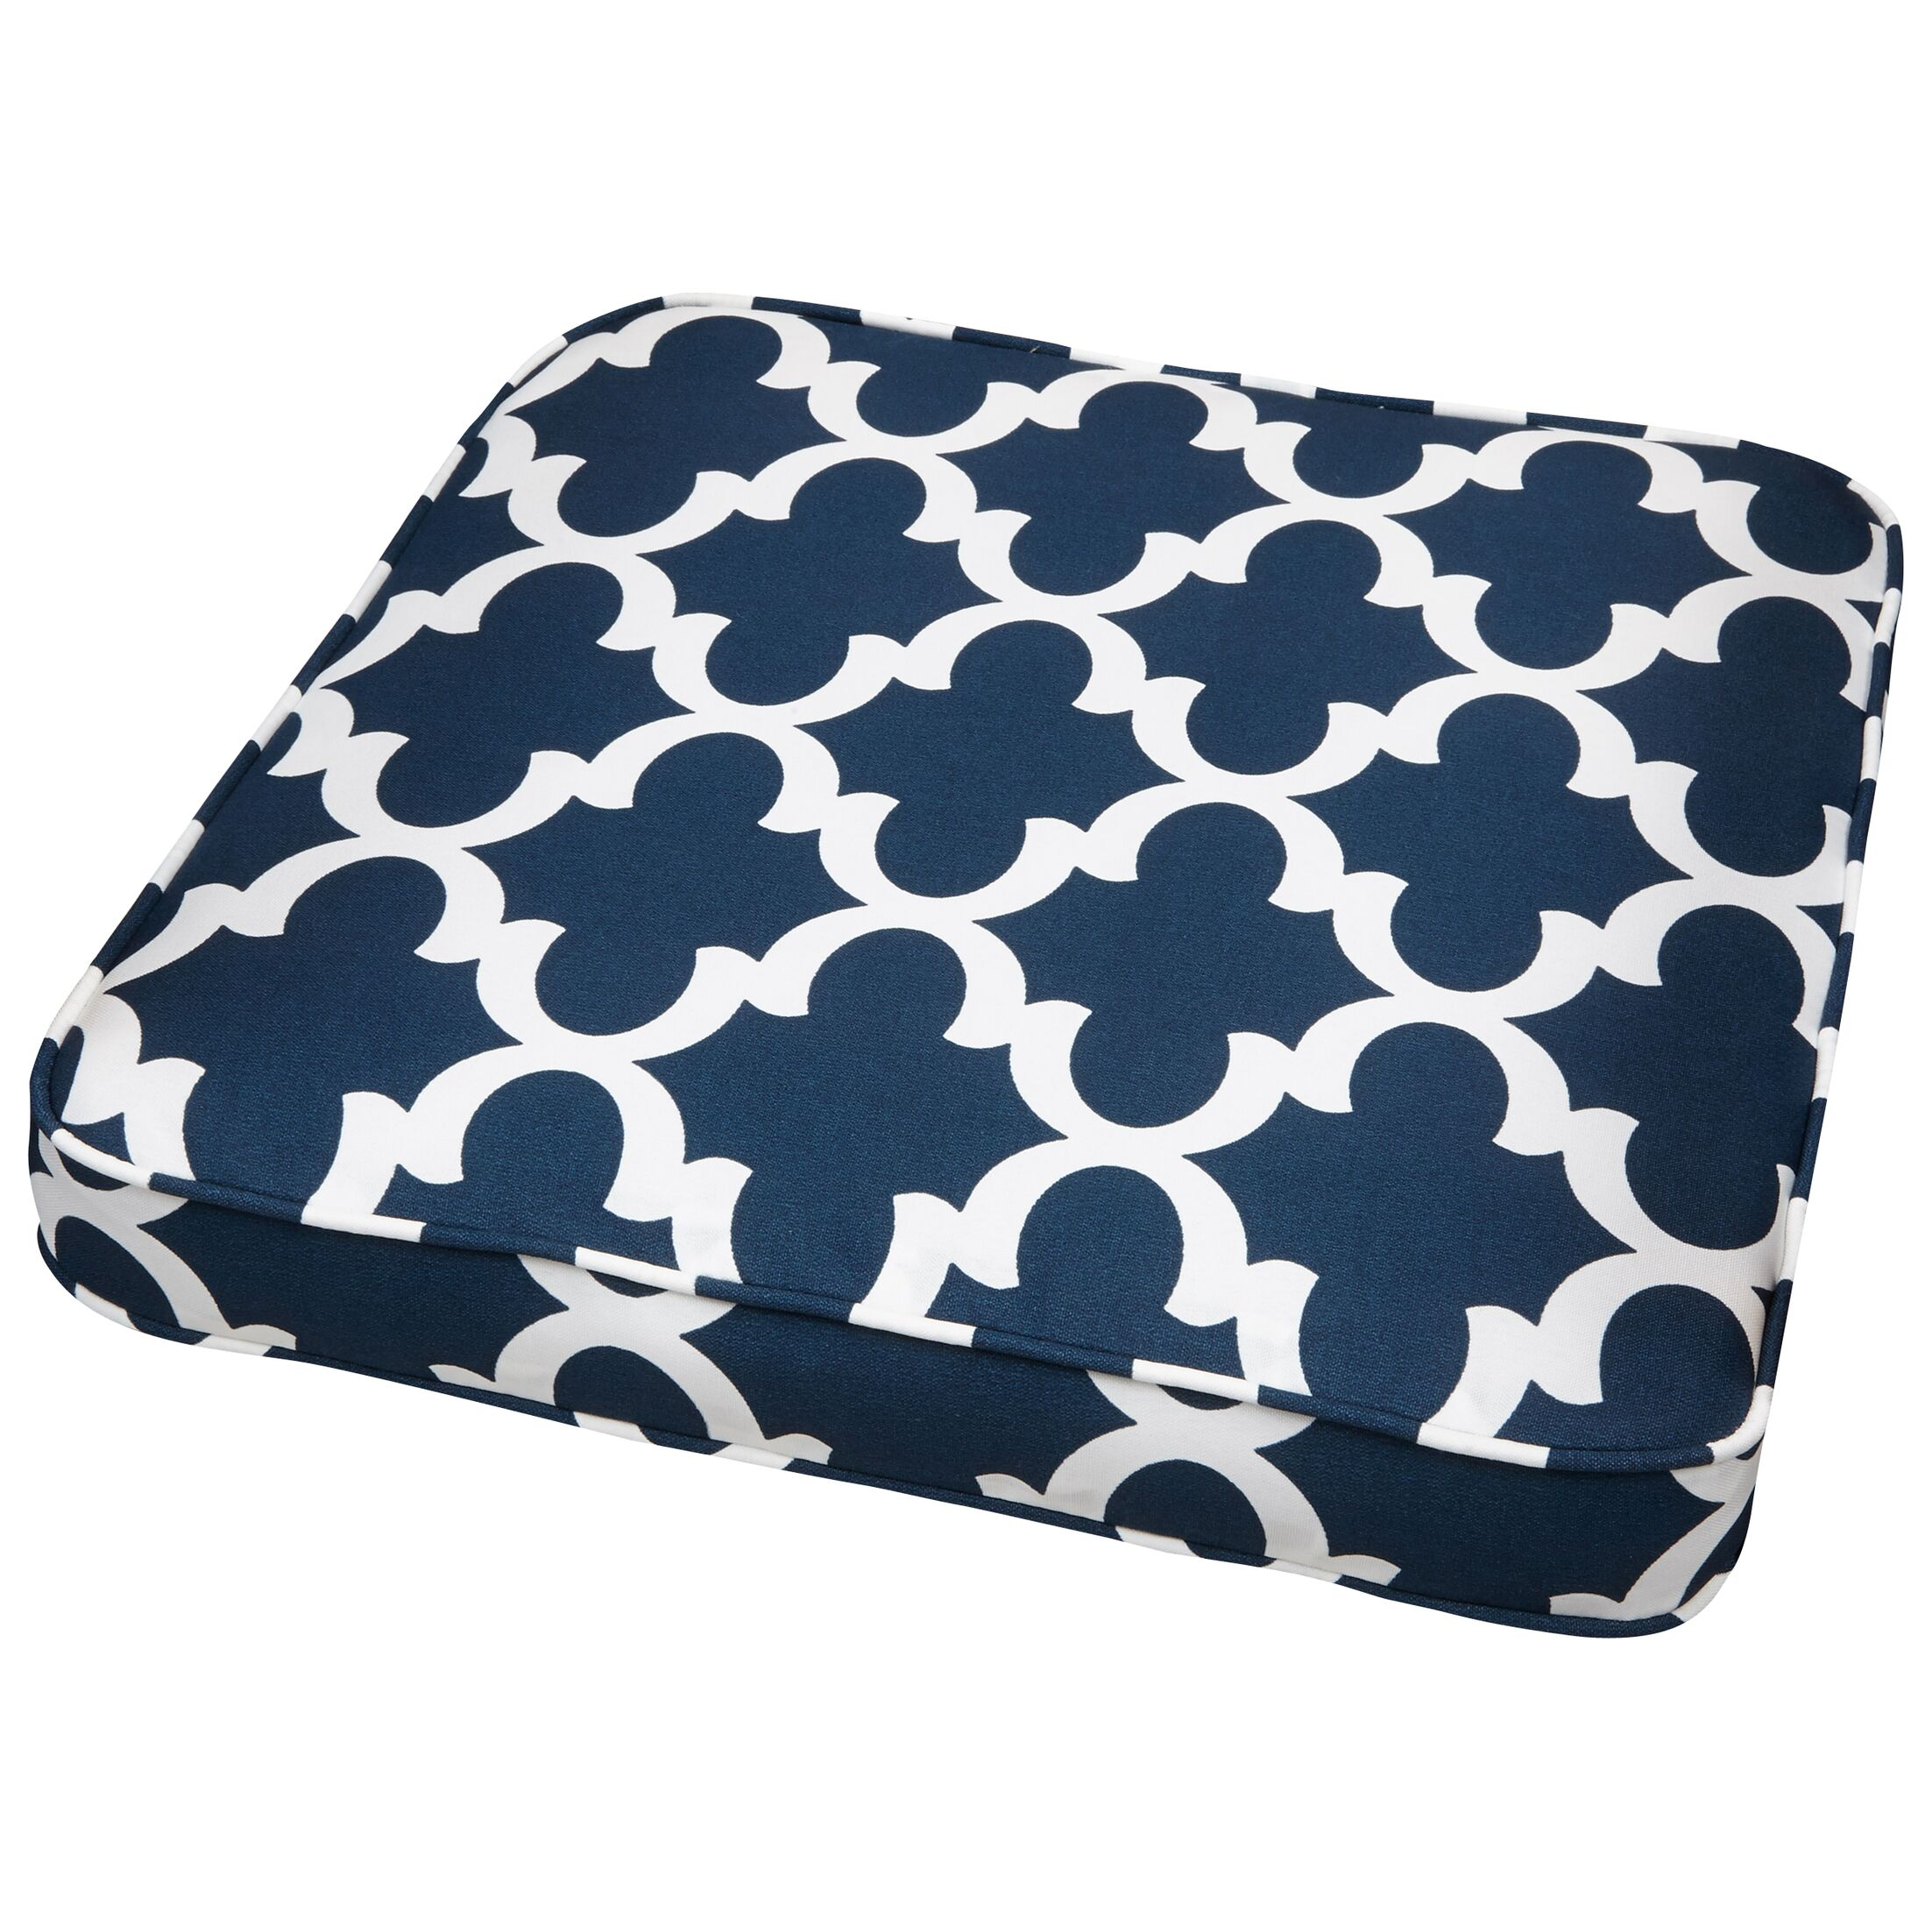 Stylish Indoor/Outdoor Dining Chair Cushion Size: 19